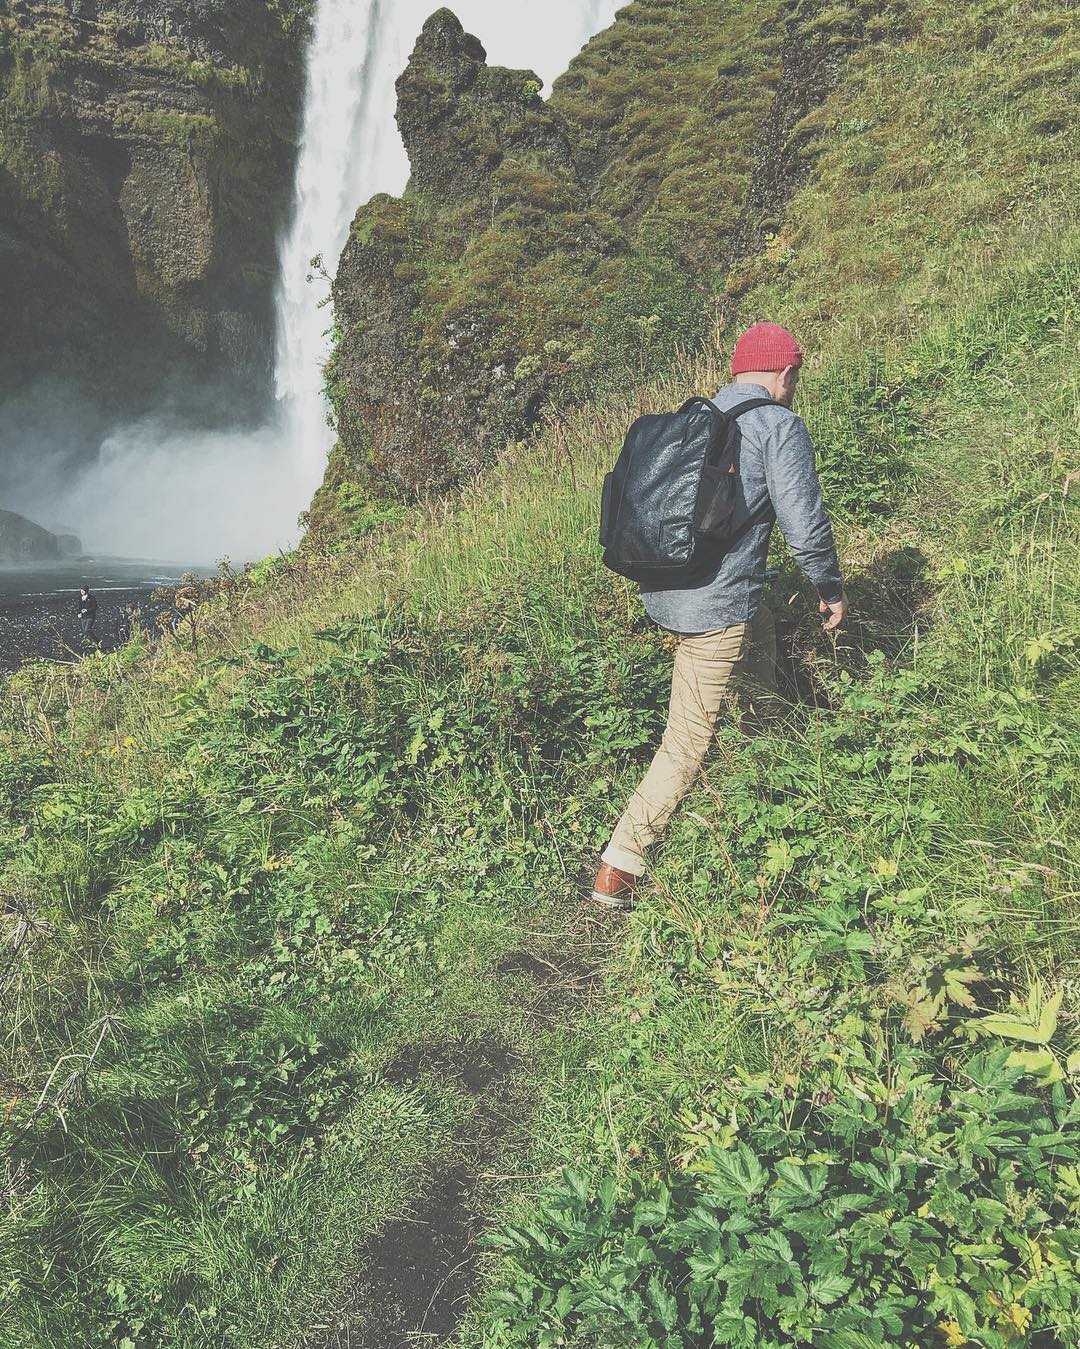 Have you checked out our latest Conquest yet? It up over on our site! The 8th installment of our adventure series takes you on an amazing journey to Iceland